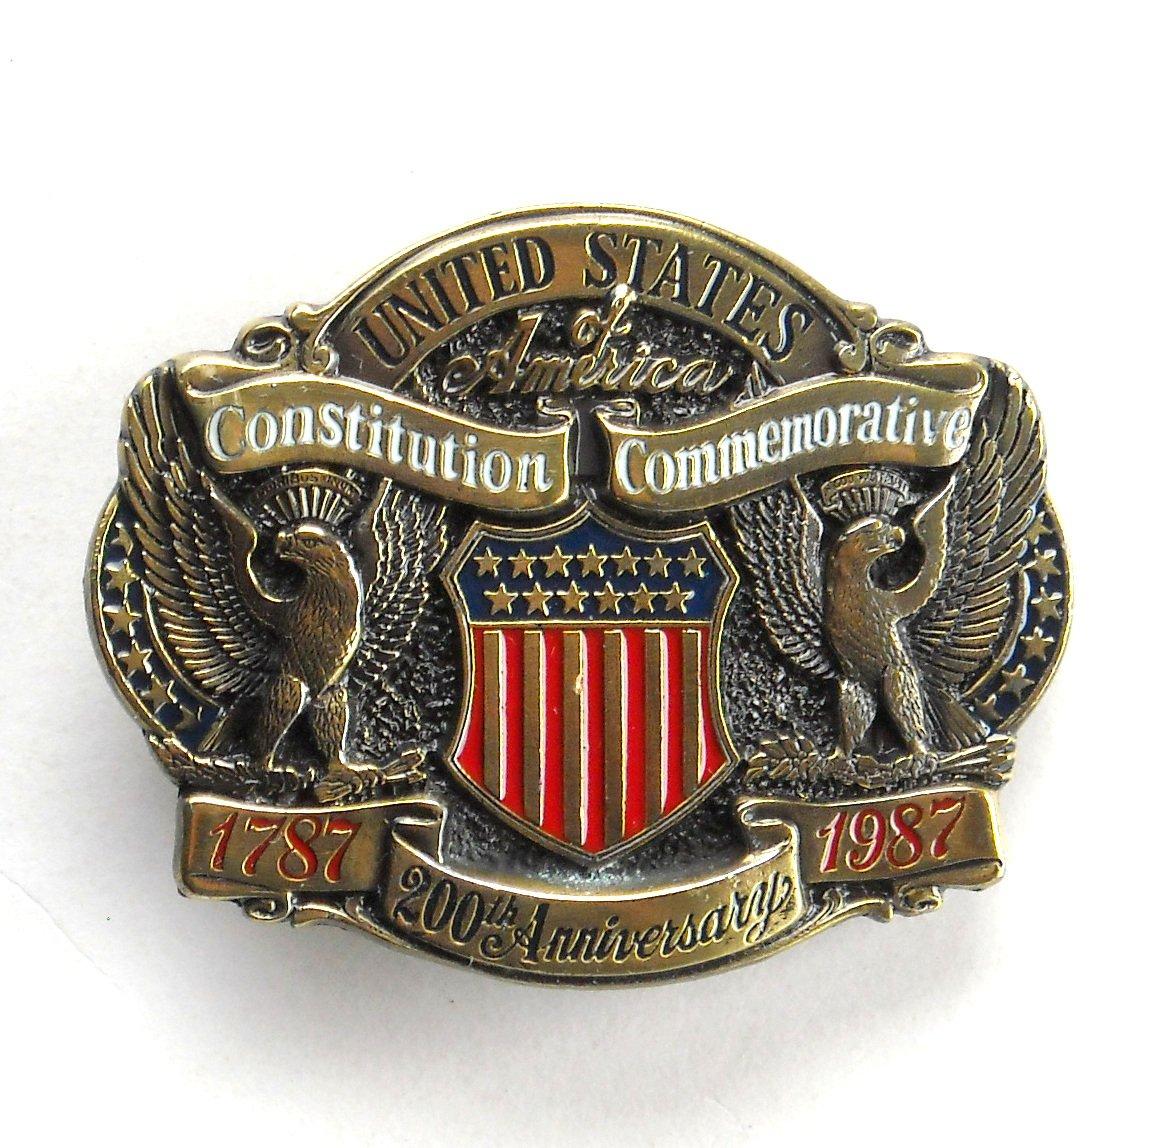 USA 200 Anniversary Constitution Vintage Limited Edition No 61818 belt buckle